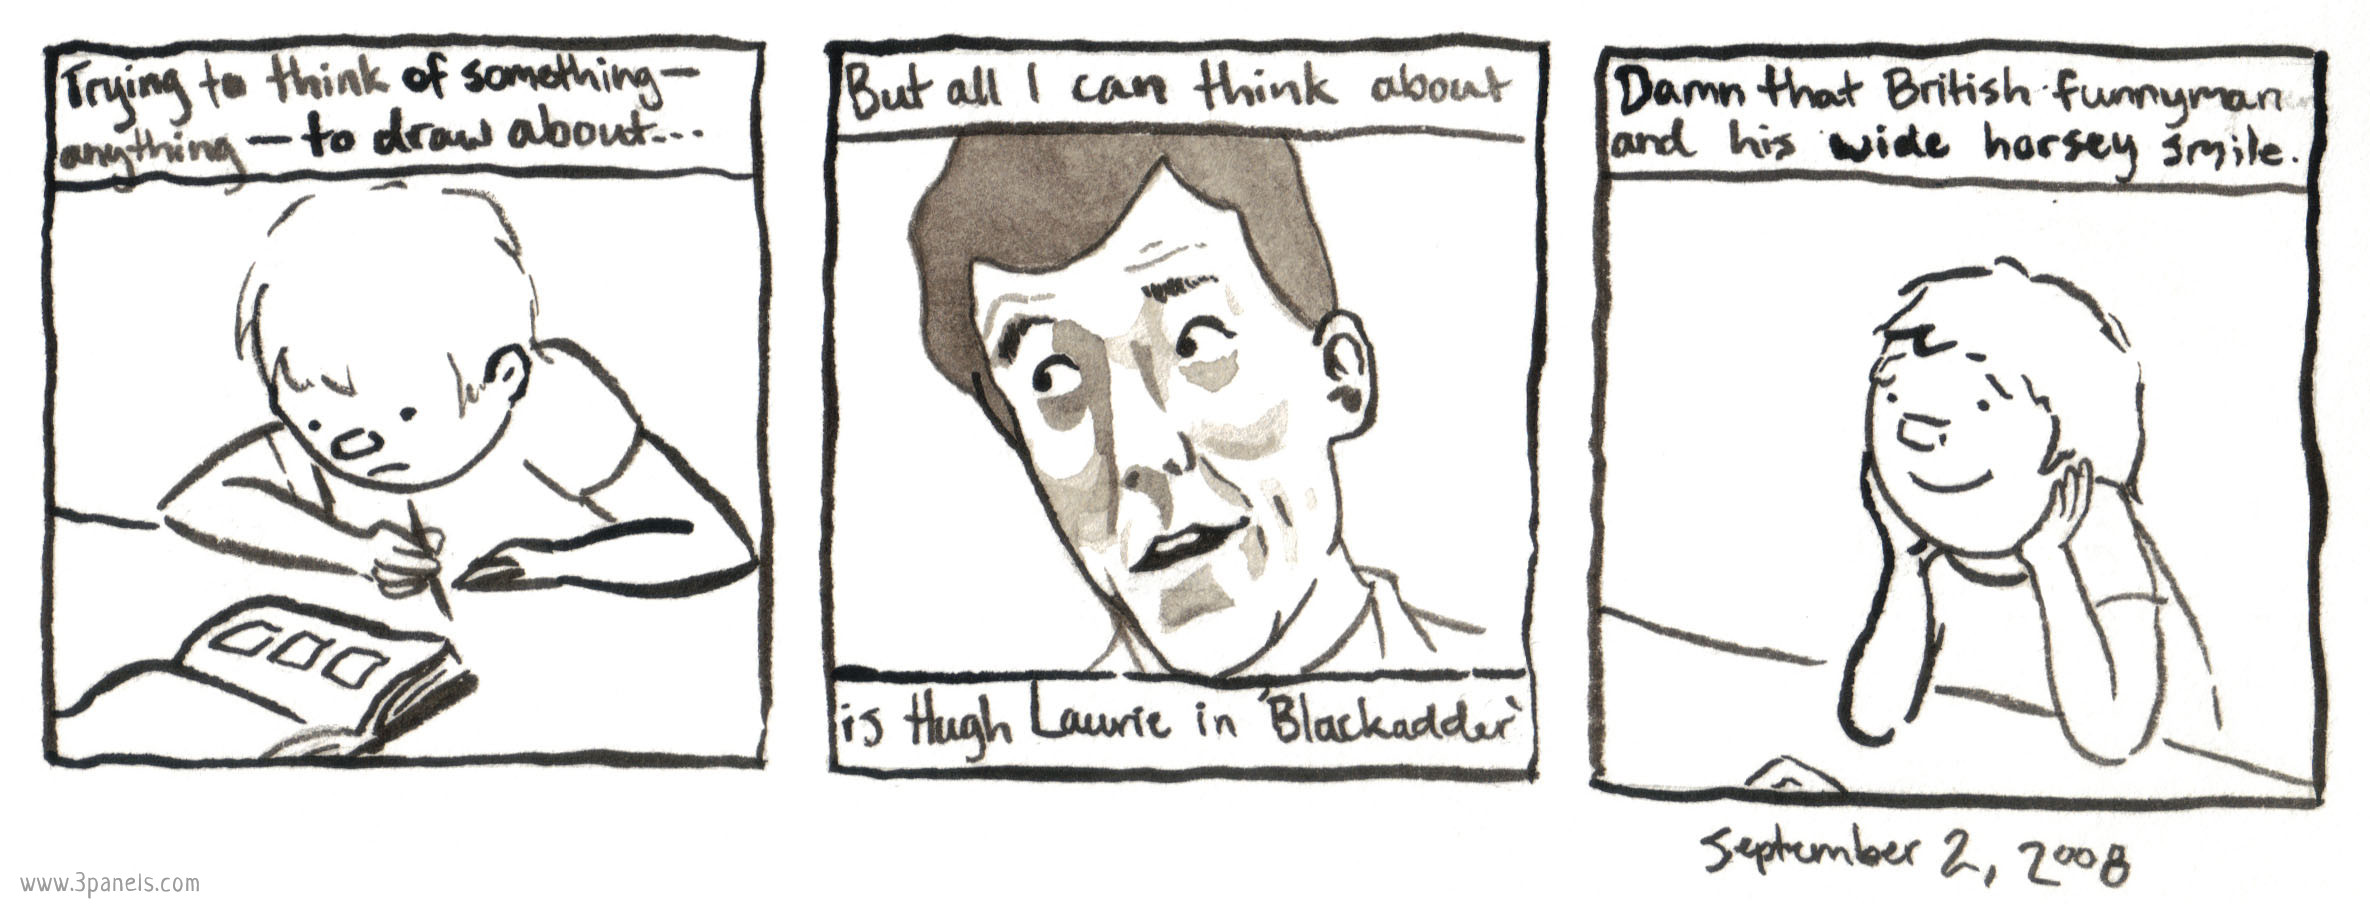 Panel 1 image: Dean is staring at a blank sketchbook with a pencil in their hand. Panel 1 text: Trying to think of something--anything--to draw about.... Panel 2 image: close up of actor Hugh Laurie's face. Panel 2 text: But all I can think about is Hugh Laurie in 'Blackadder.' Panel 3 image: Dean smiles dreamily, resting their chin in their hands. Panel 3 text: Damn that British funnyman and his wide horsey smile.